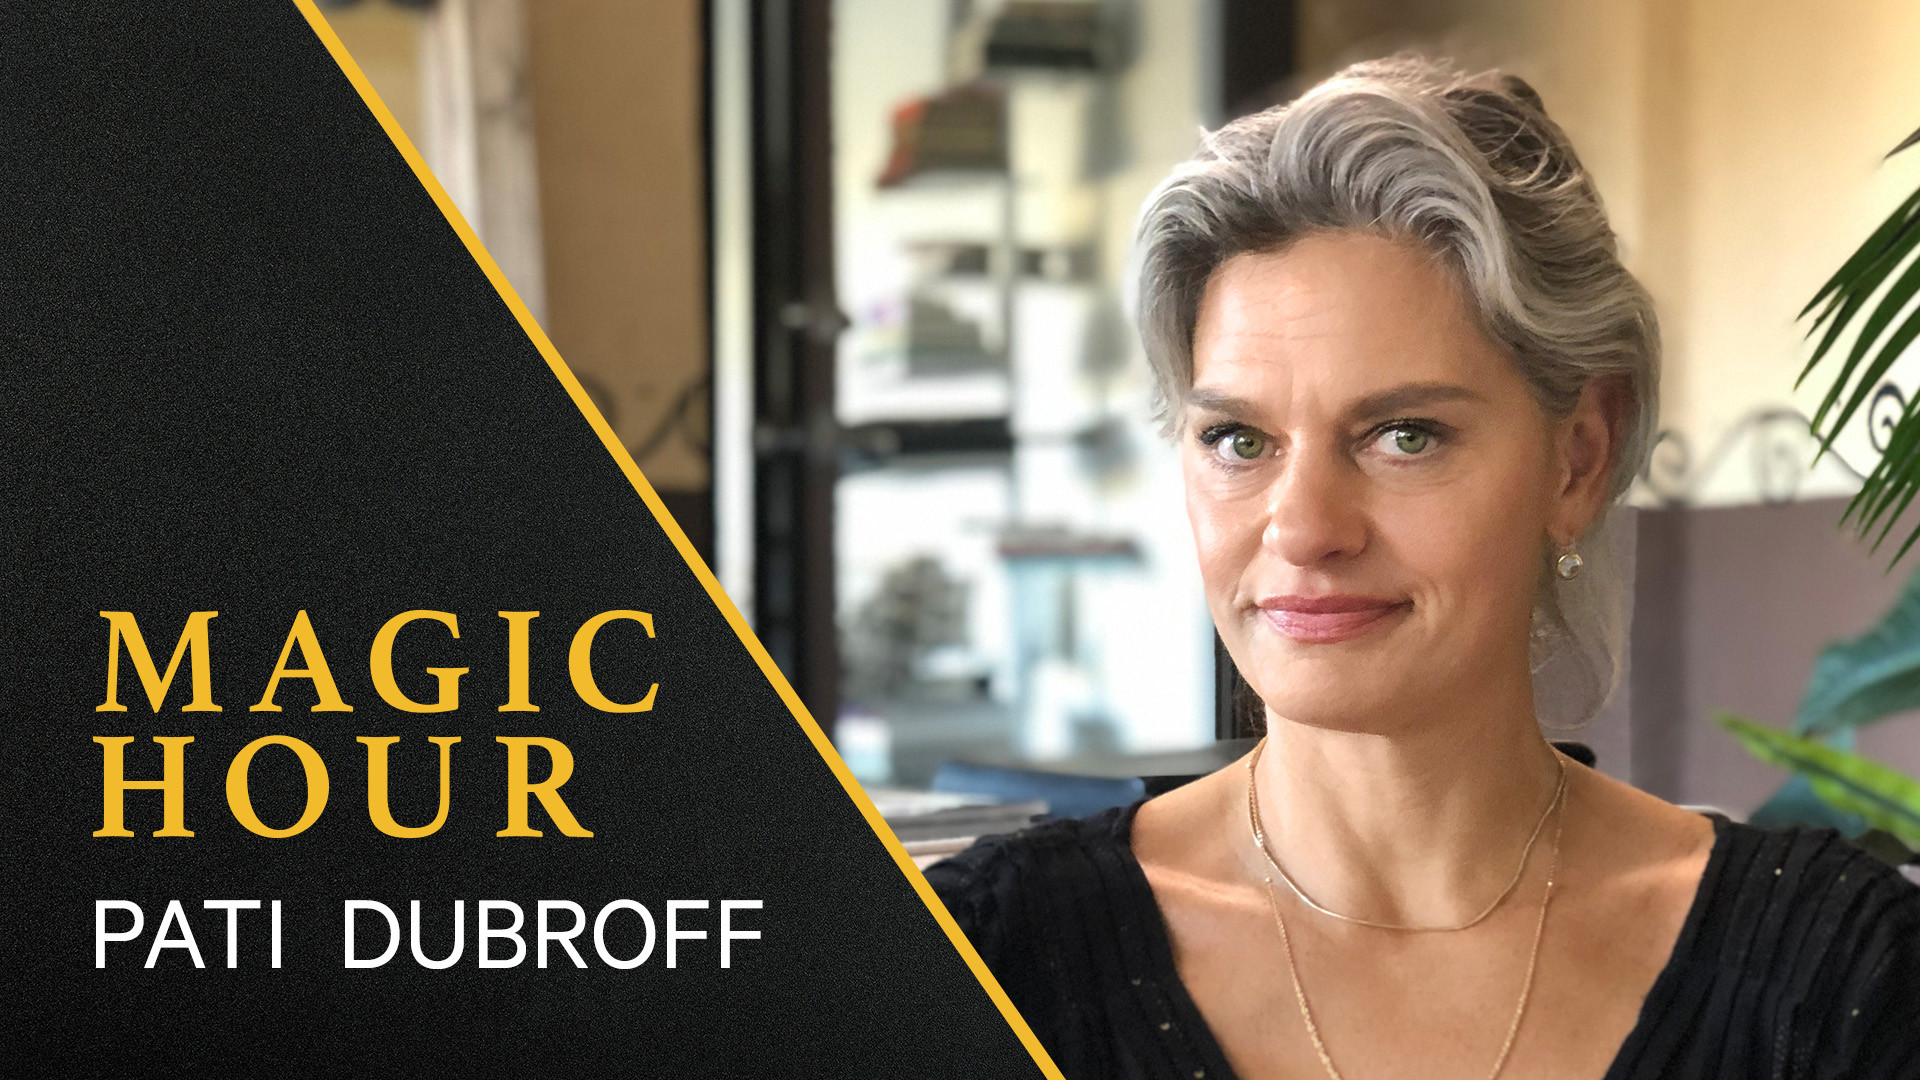 "A Great Makeup Artist ""Sees Beauty in Many Ways"": Margot Robbie's Makeup Artist Pati Dubroff Tells All 